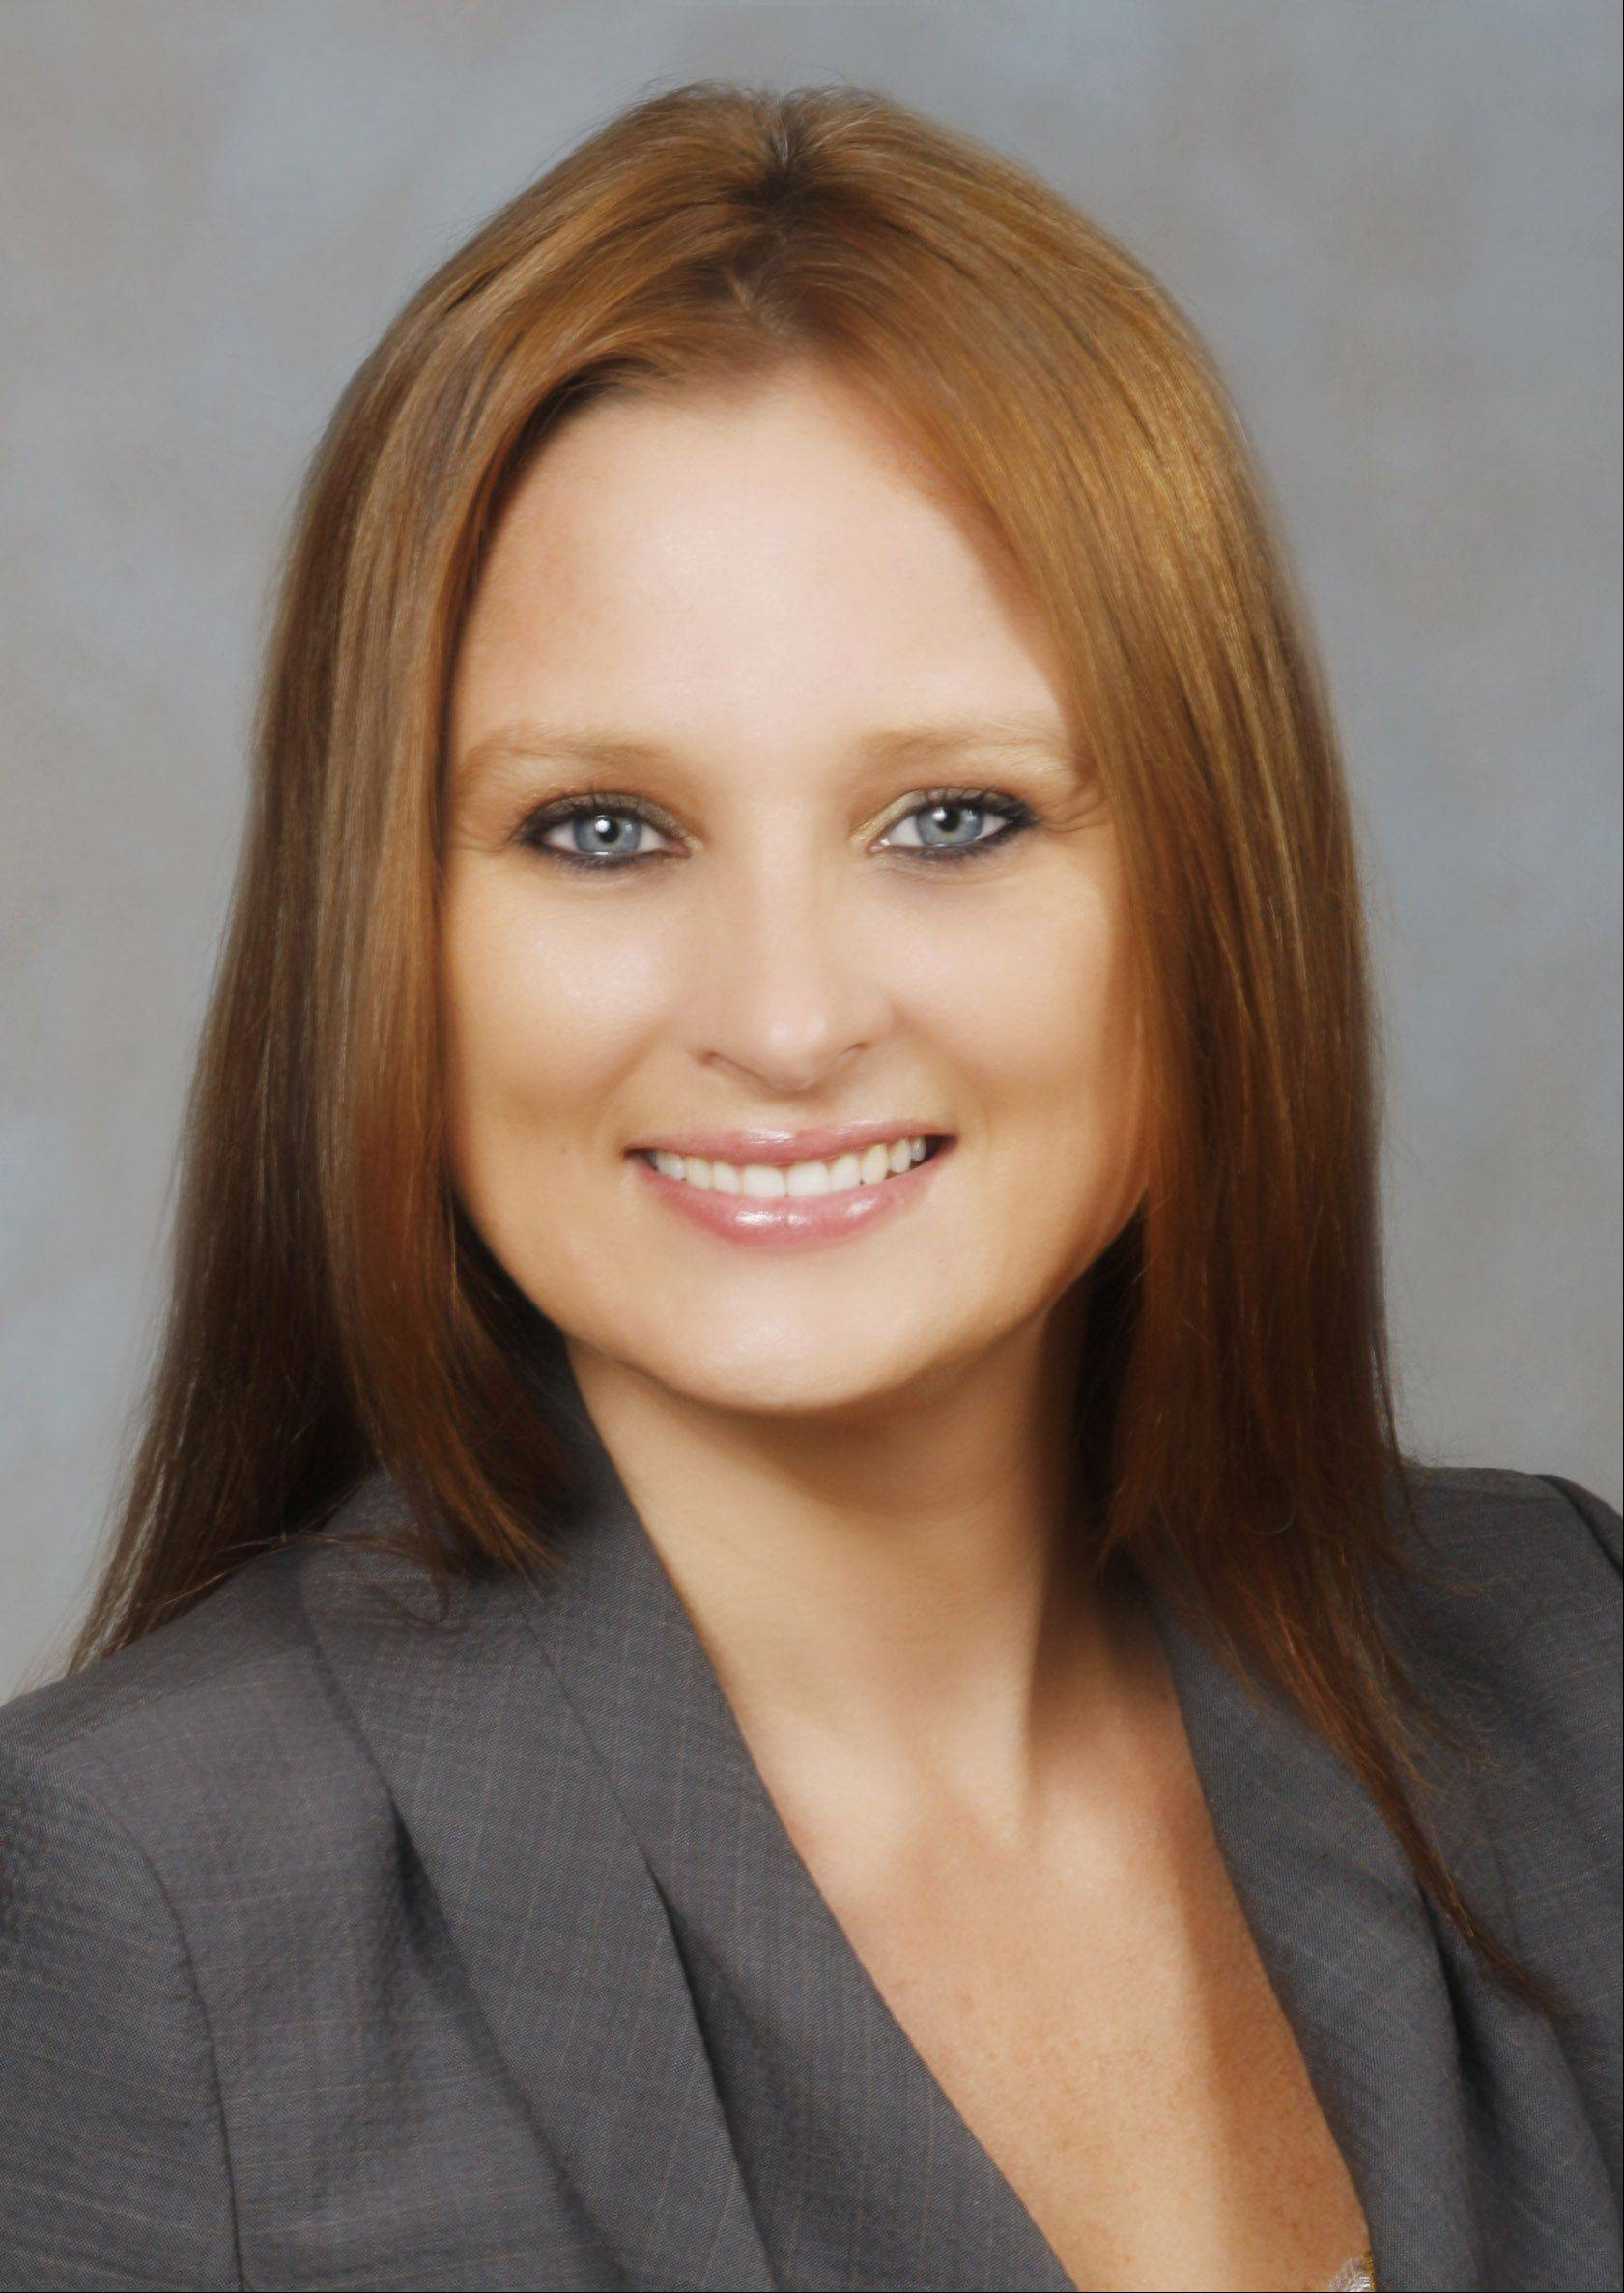 Island Lake resident Danielle Rowe is running for the state House in District 52, the post formerly held by longtime Republican lawmaker Mark Beaubien. Beaubien died earlier this year.